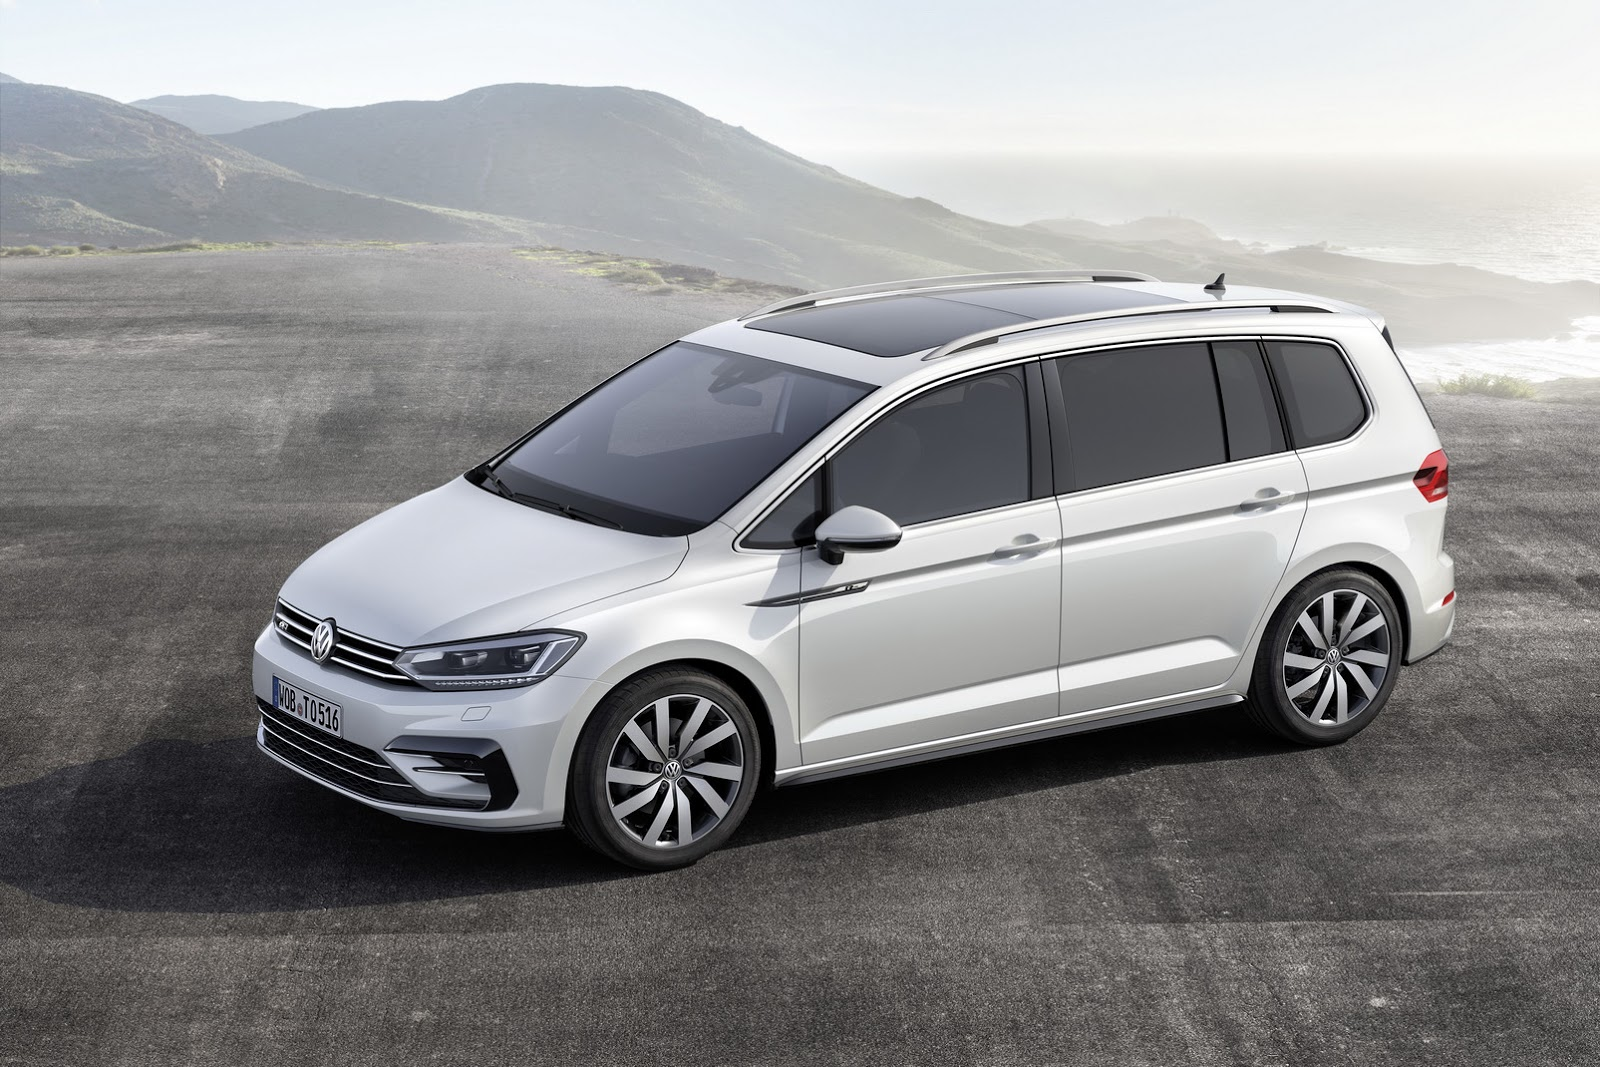 It's Official: All-New VW Touran Based On MQB Platform [w/Video]